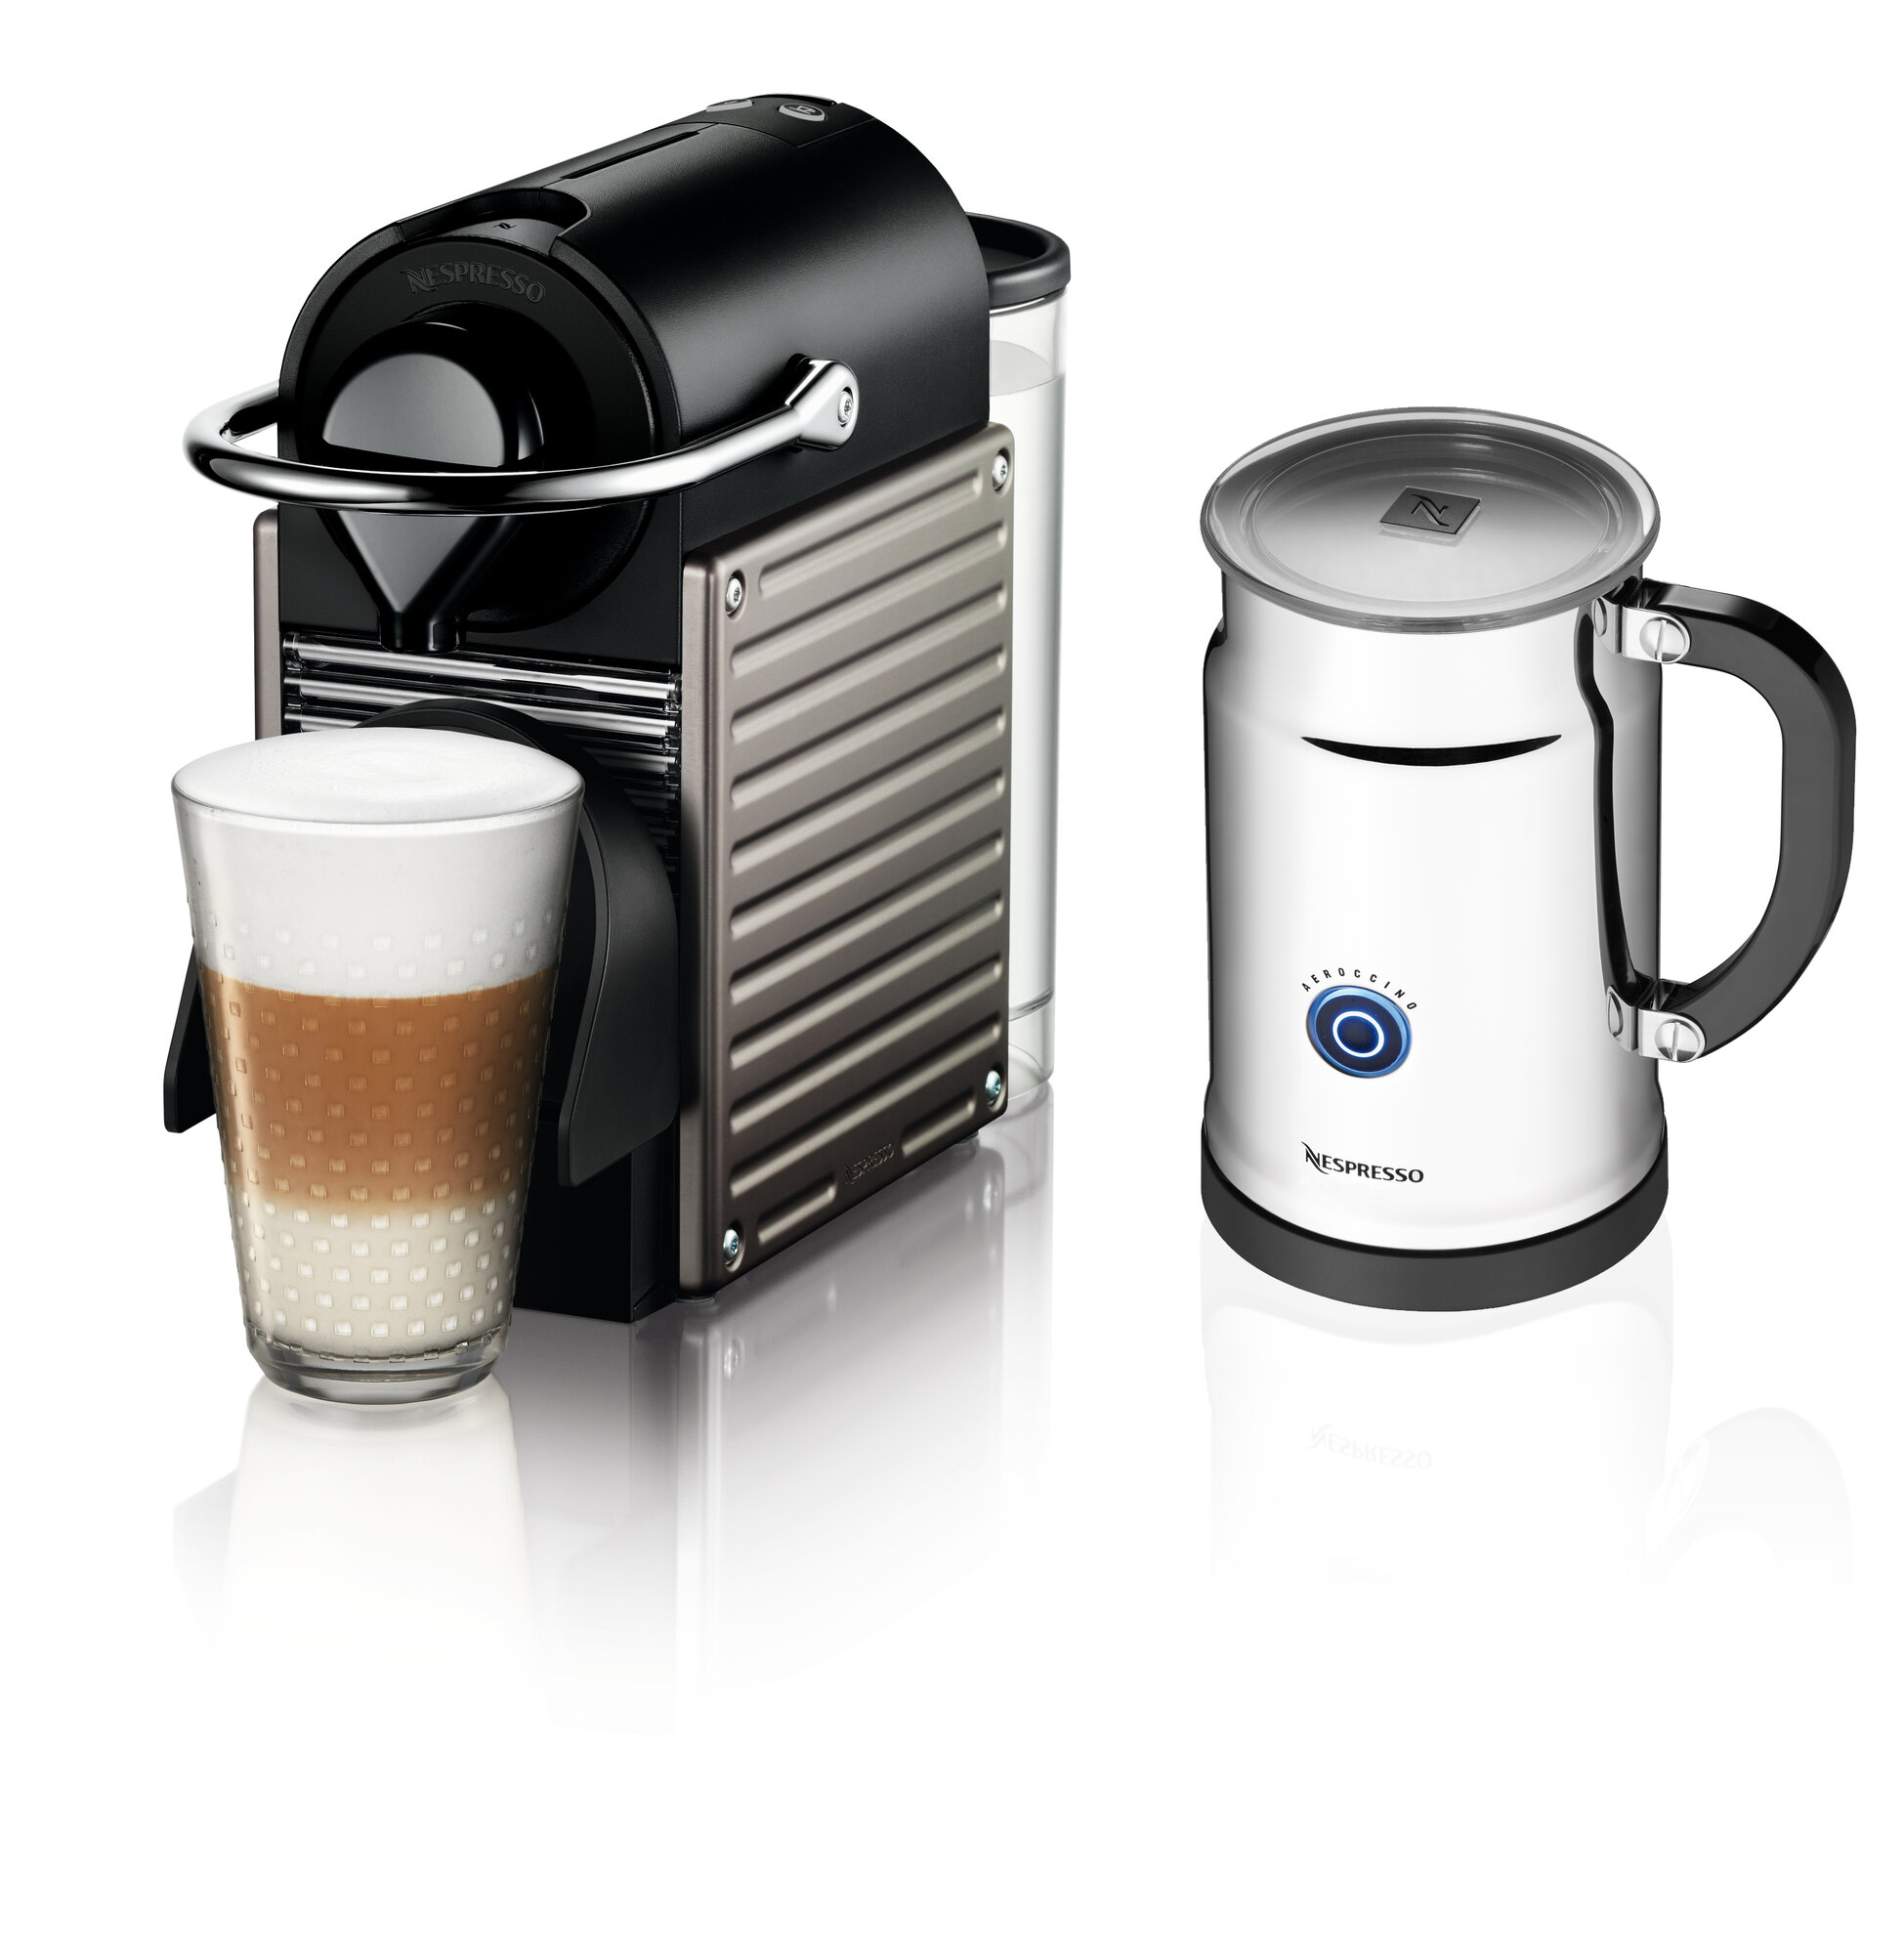 Nespresso OriginalLine Pixie Espresso Maker with Aeroccino Plus Milk Frother eBay